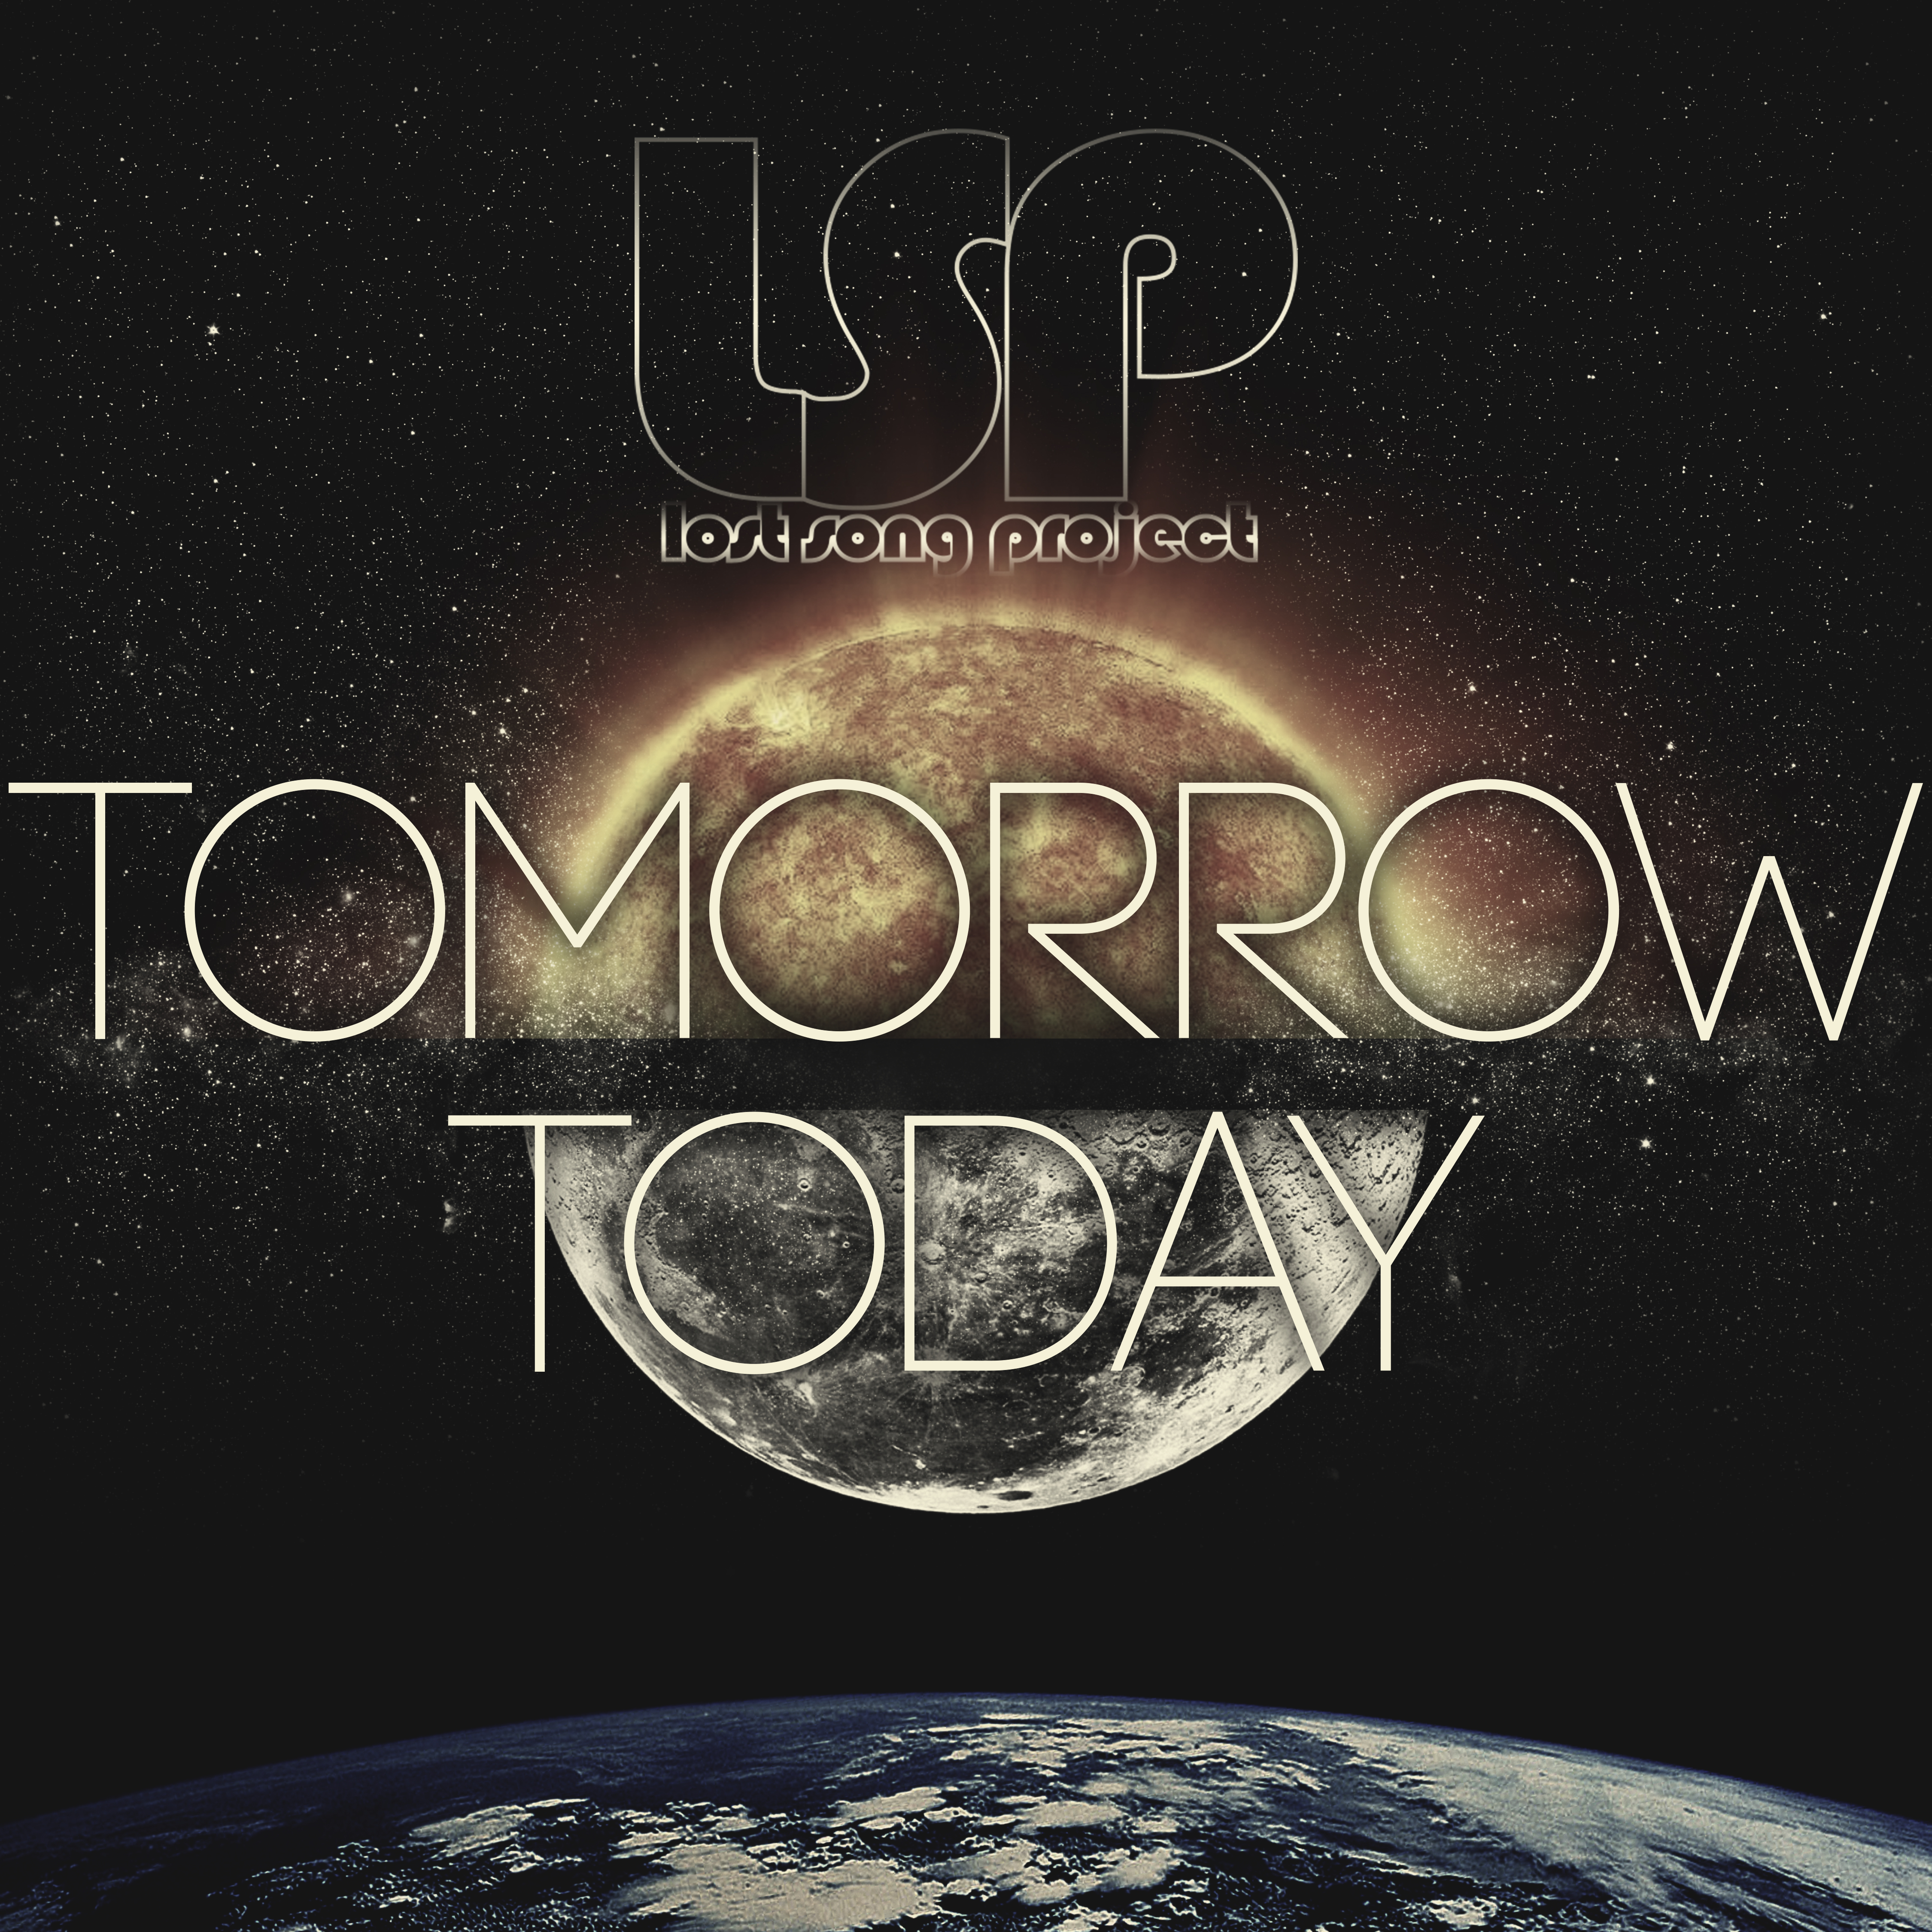 LSP_TomorrowToday_004